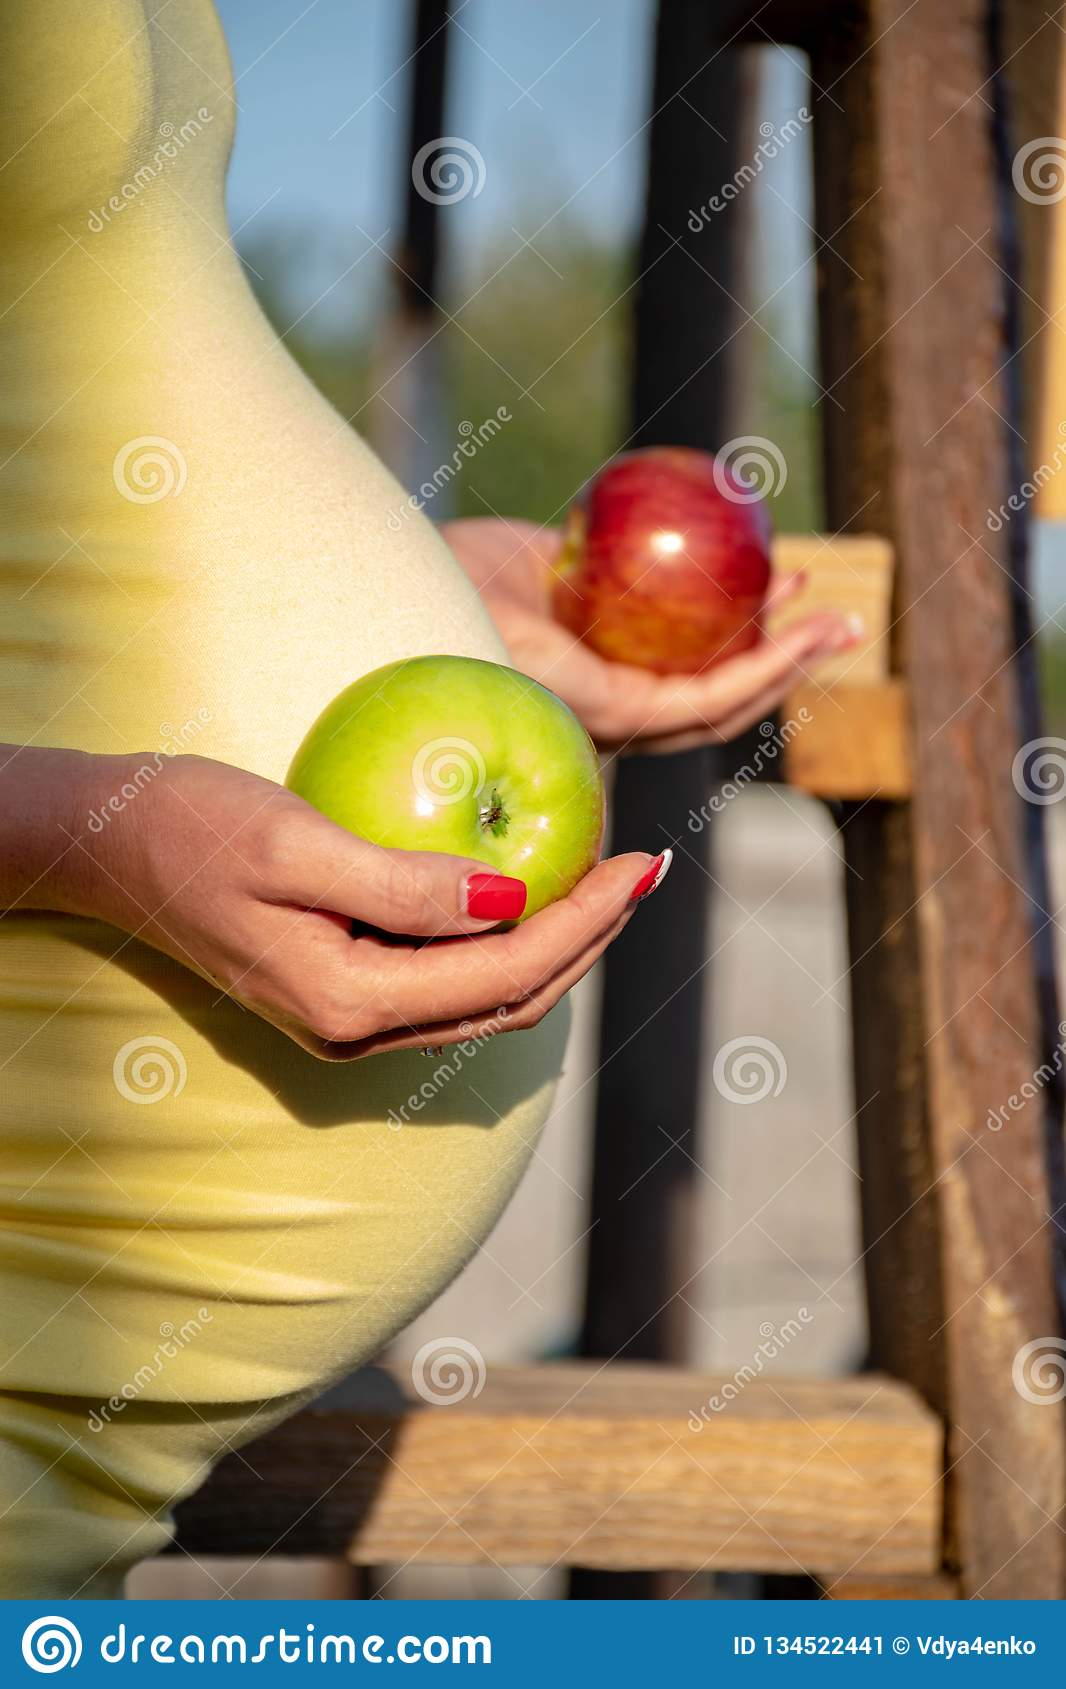 A pregnant woman holds an apple in her hands